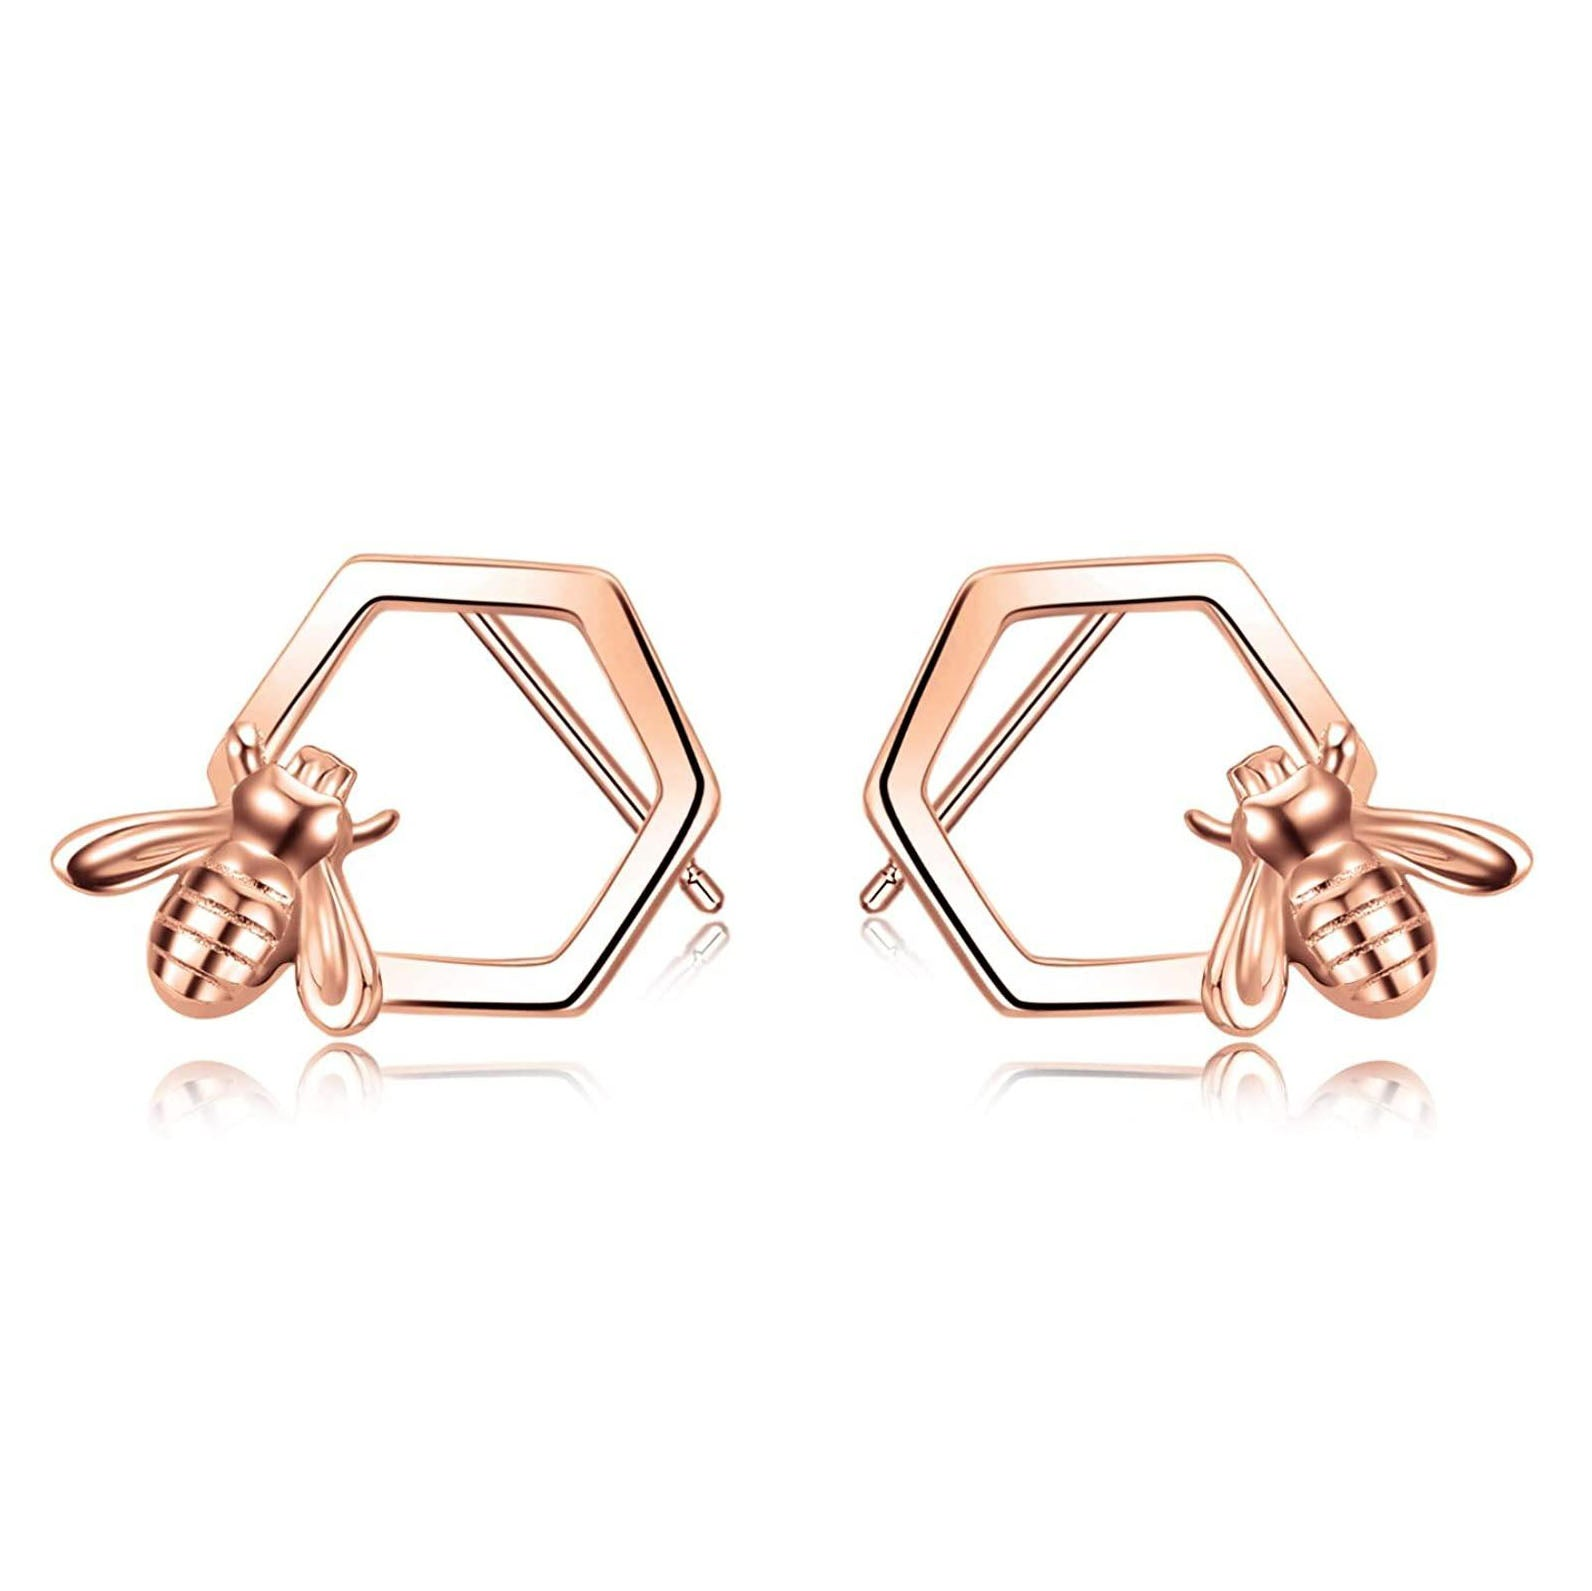 Honeycomb with Bee Stud Earrings 925 Sterling Silver Beehive and Bee Earrings for Women